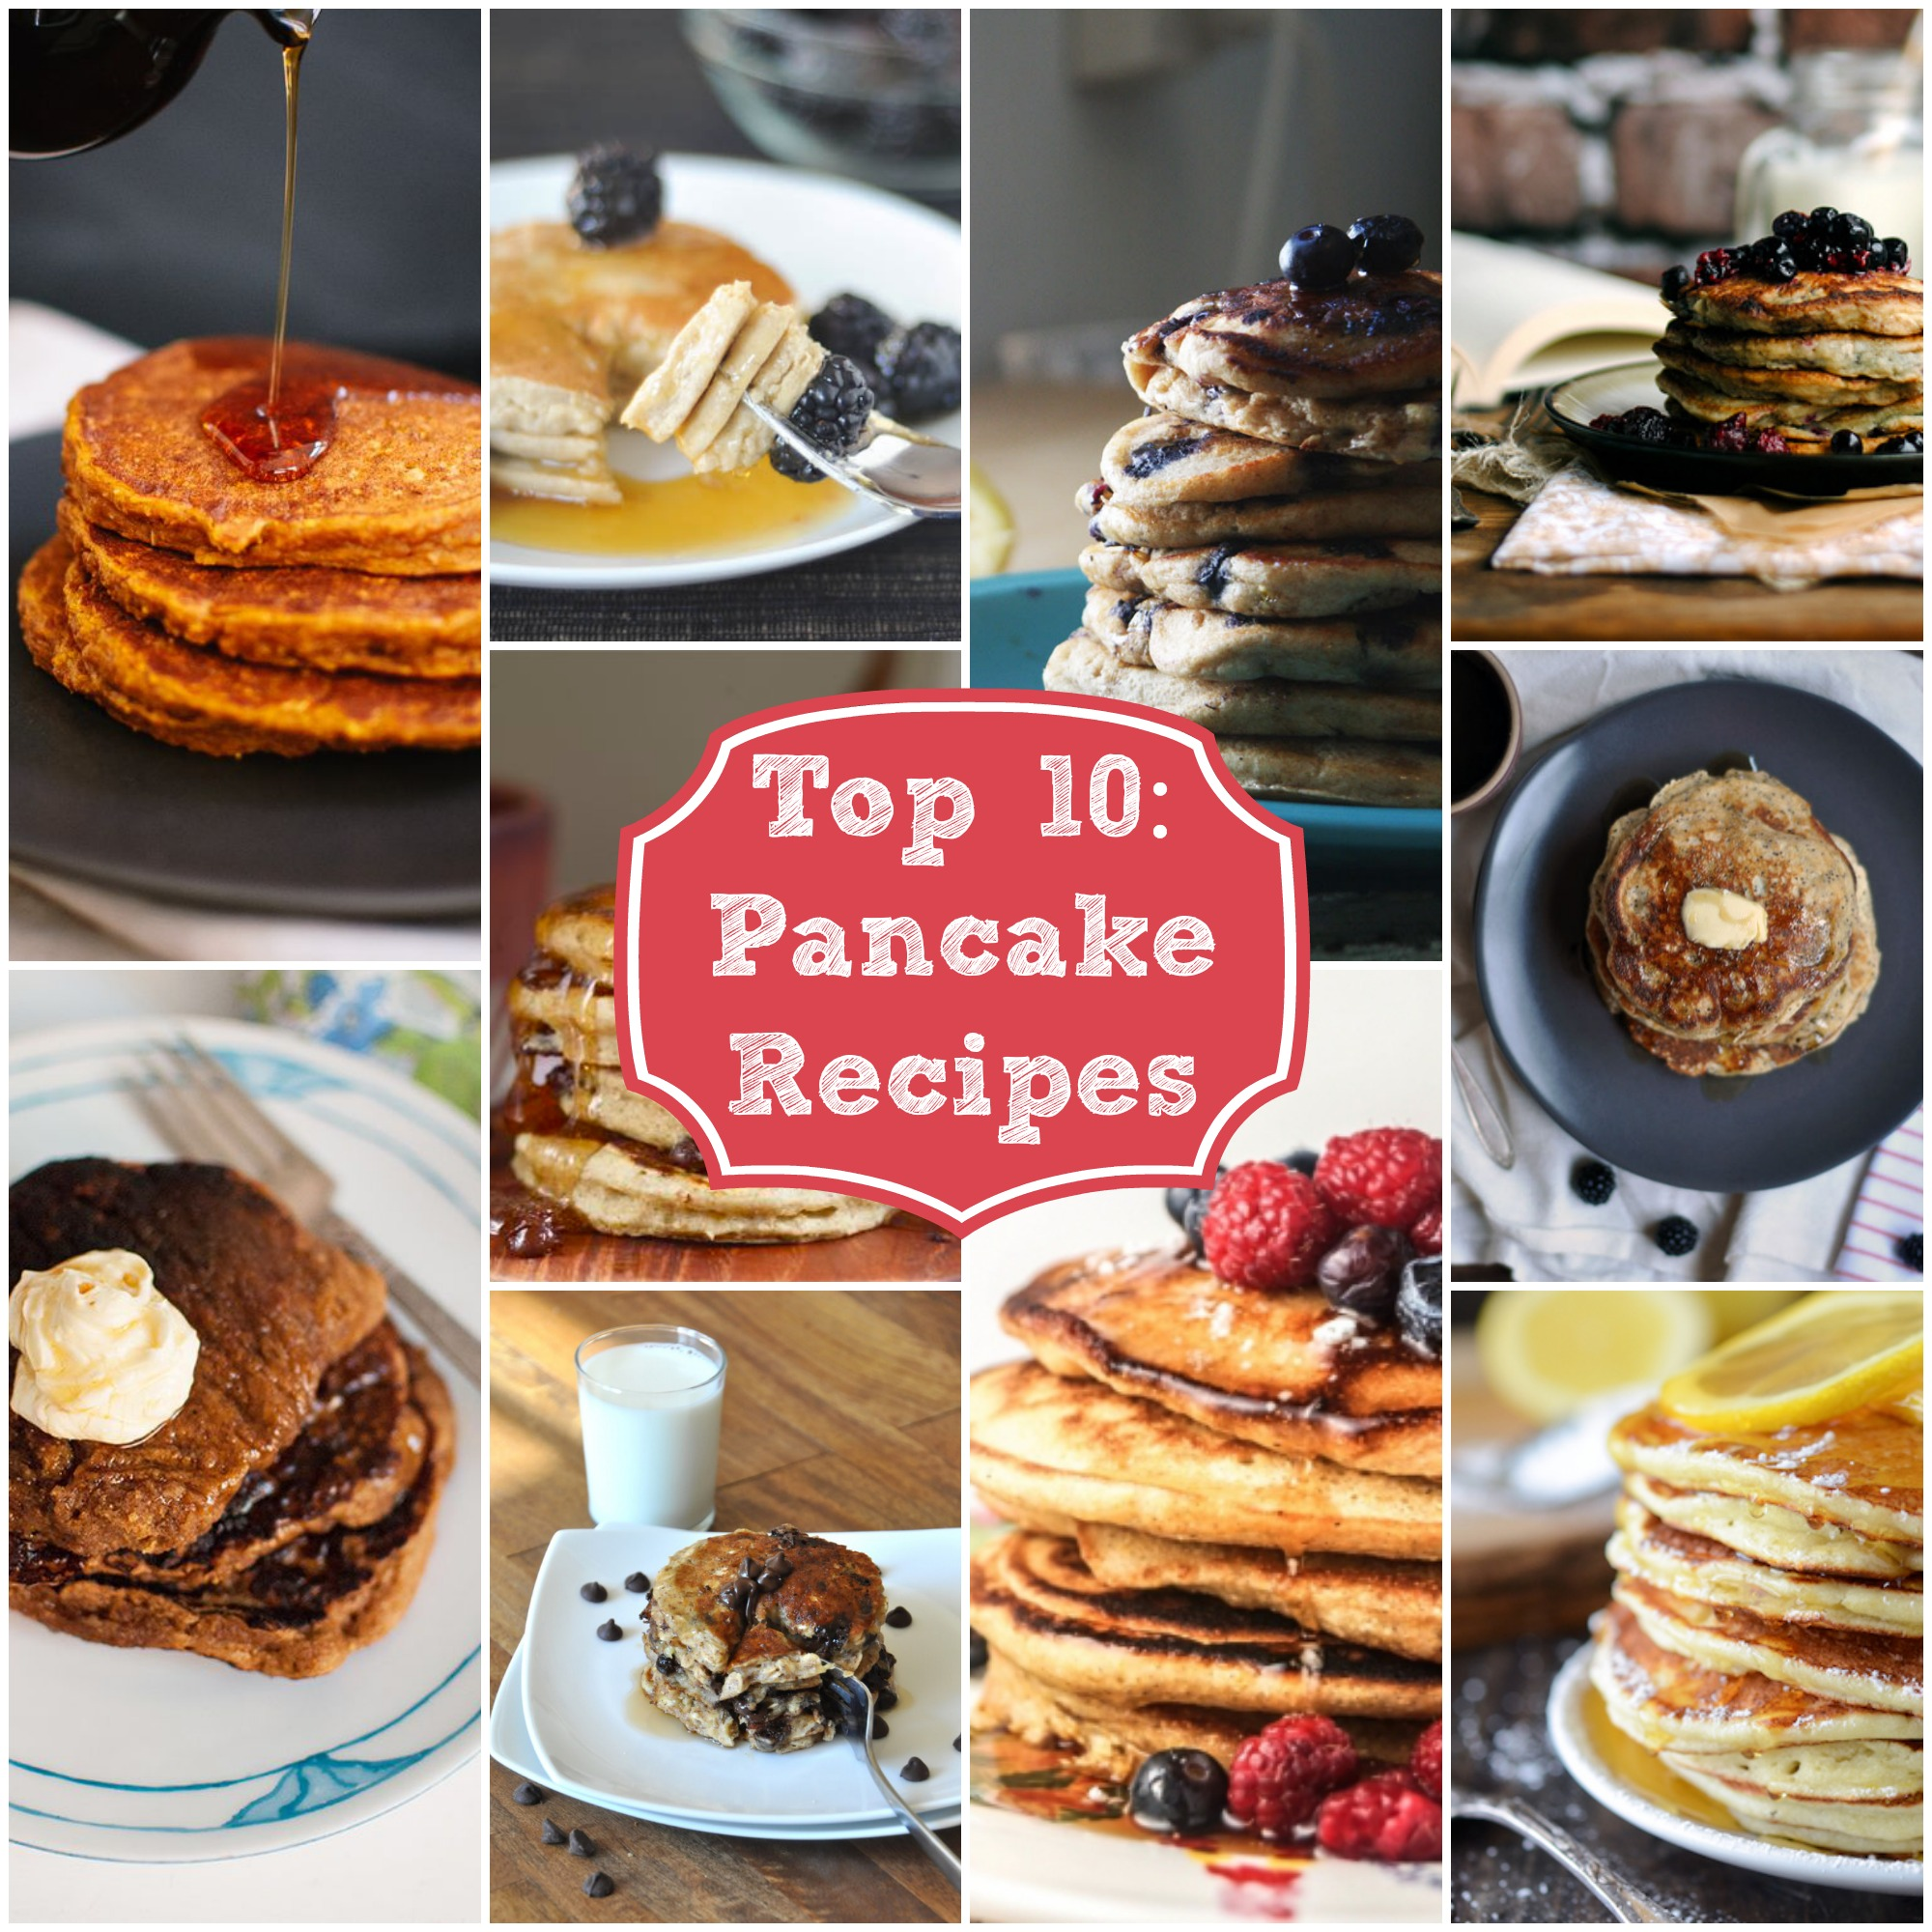 Top 10 Pancake Recipes